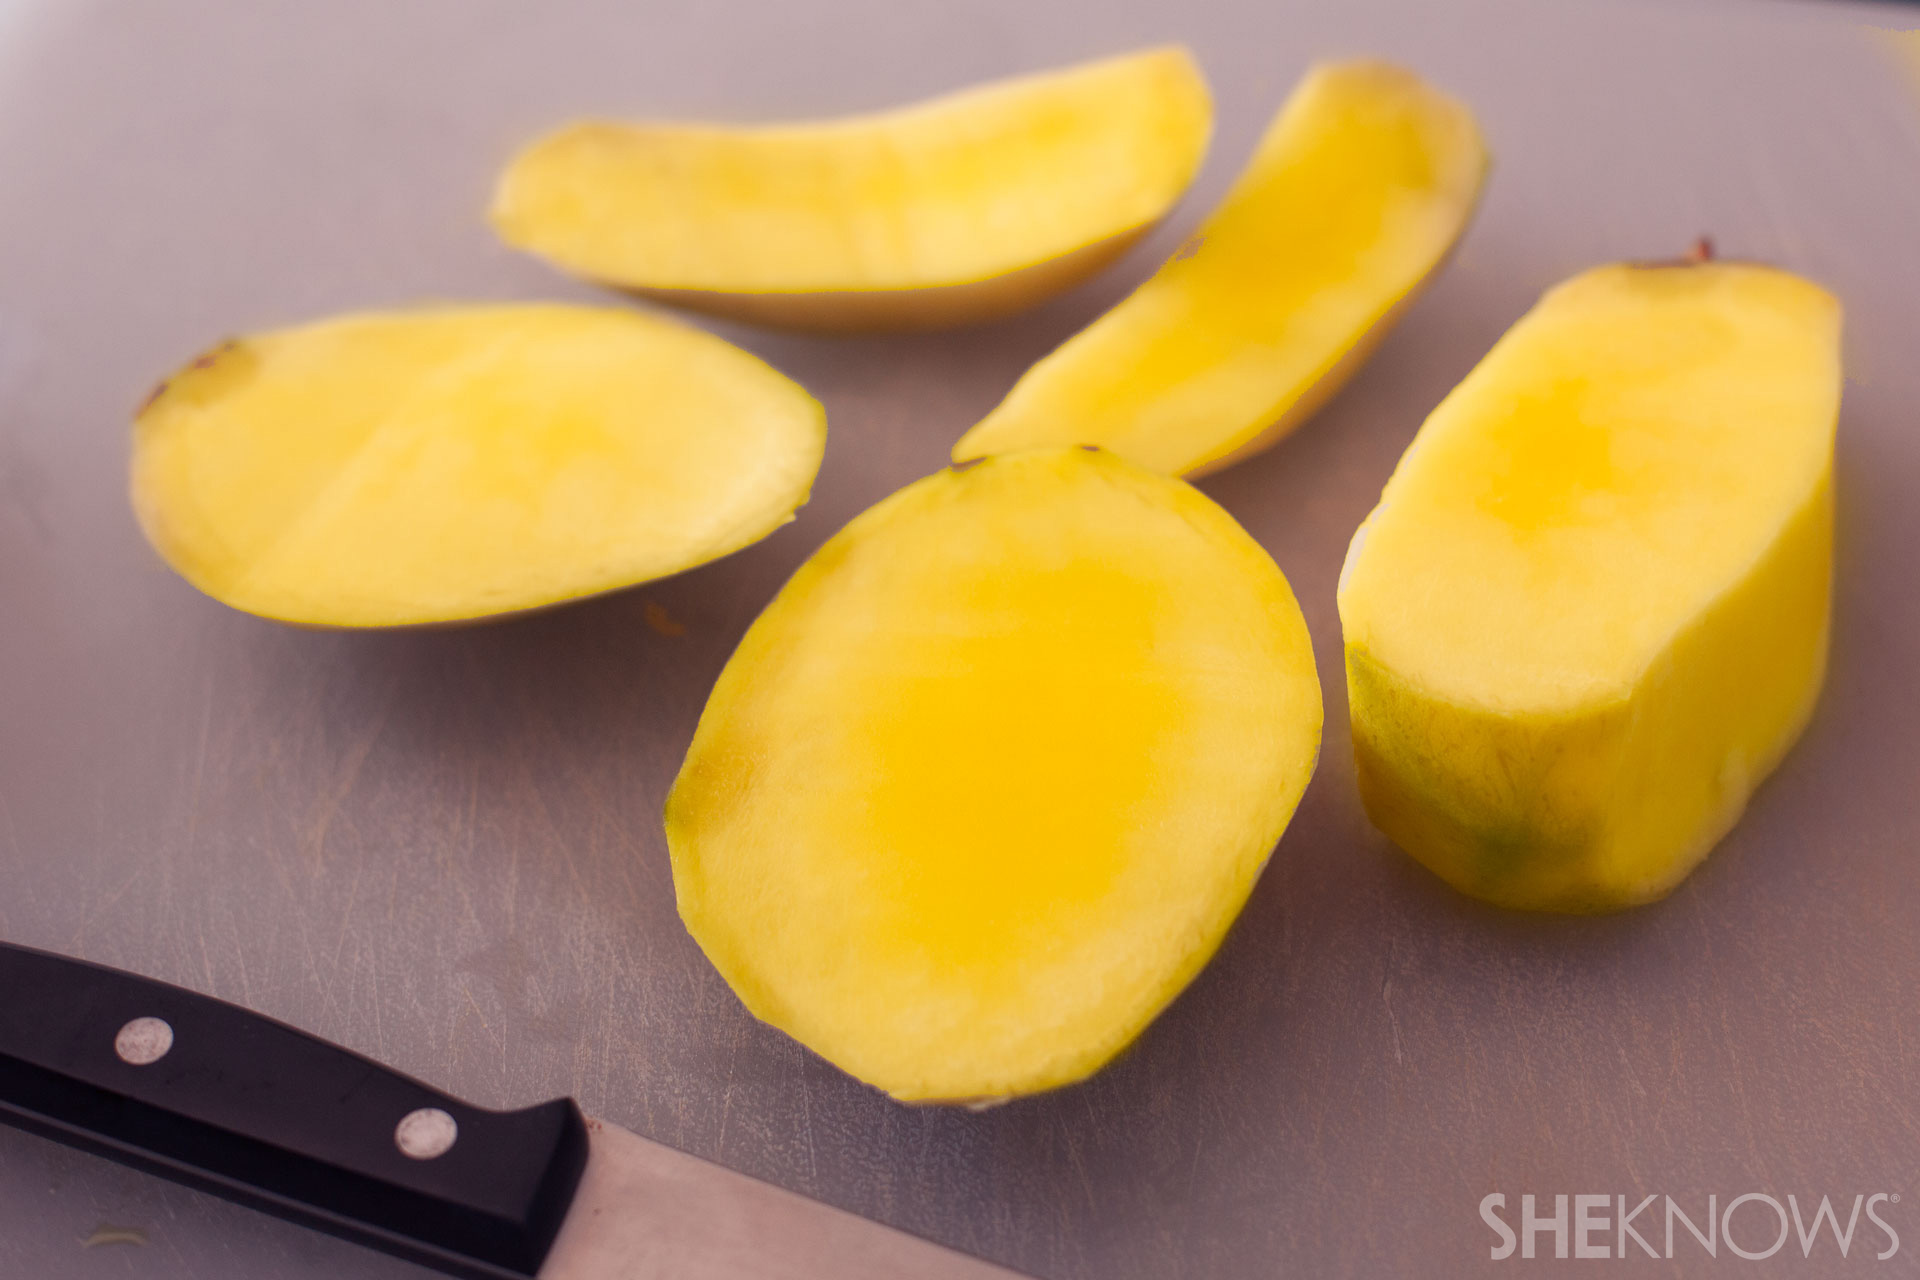 how to safely cut down a large mango tree